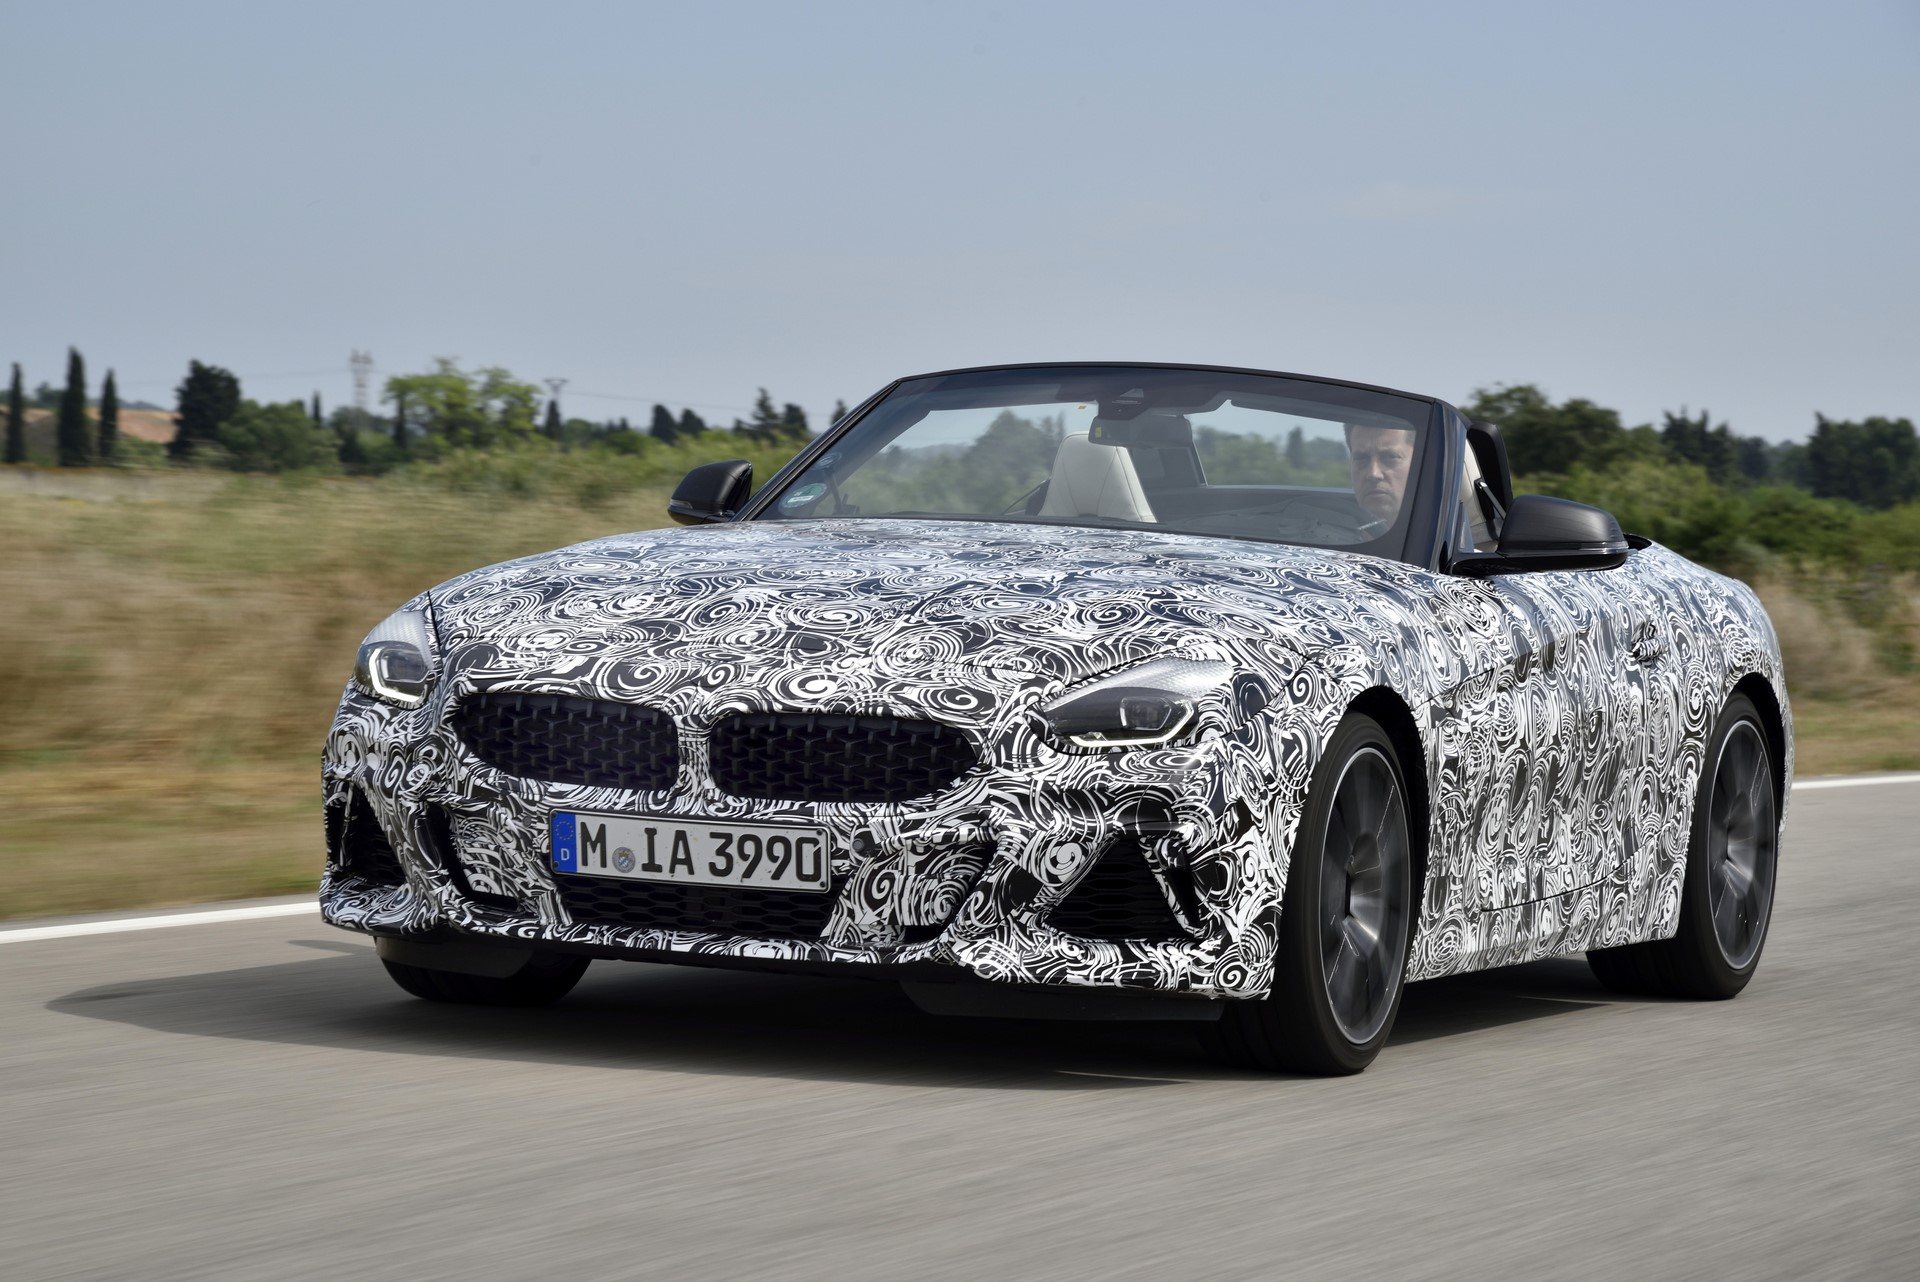 BMW Z4 M40i 2019 official spy photos (30)